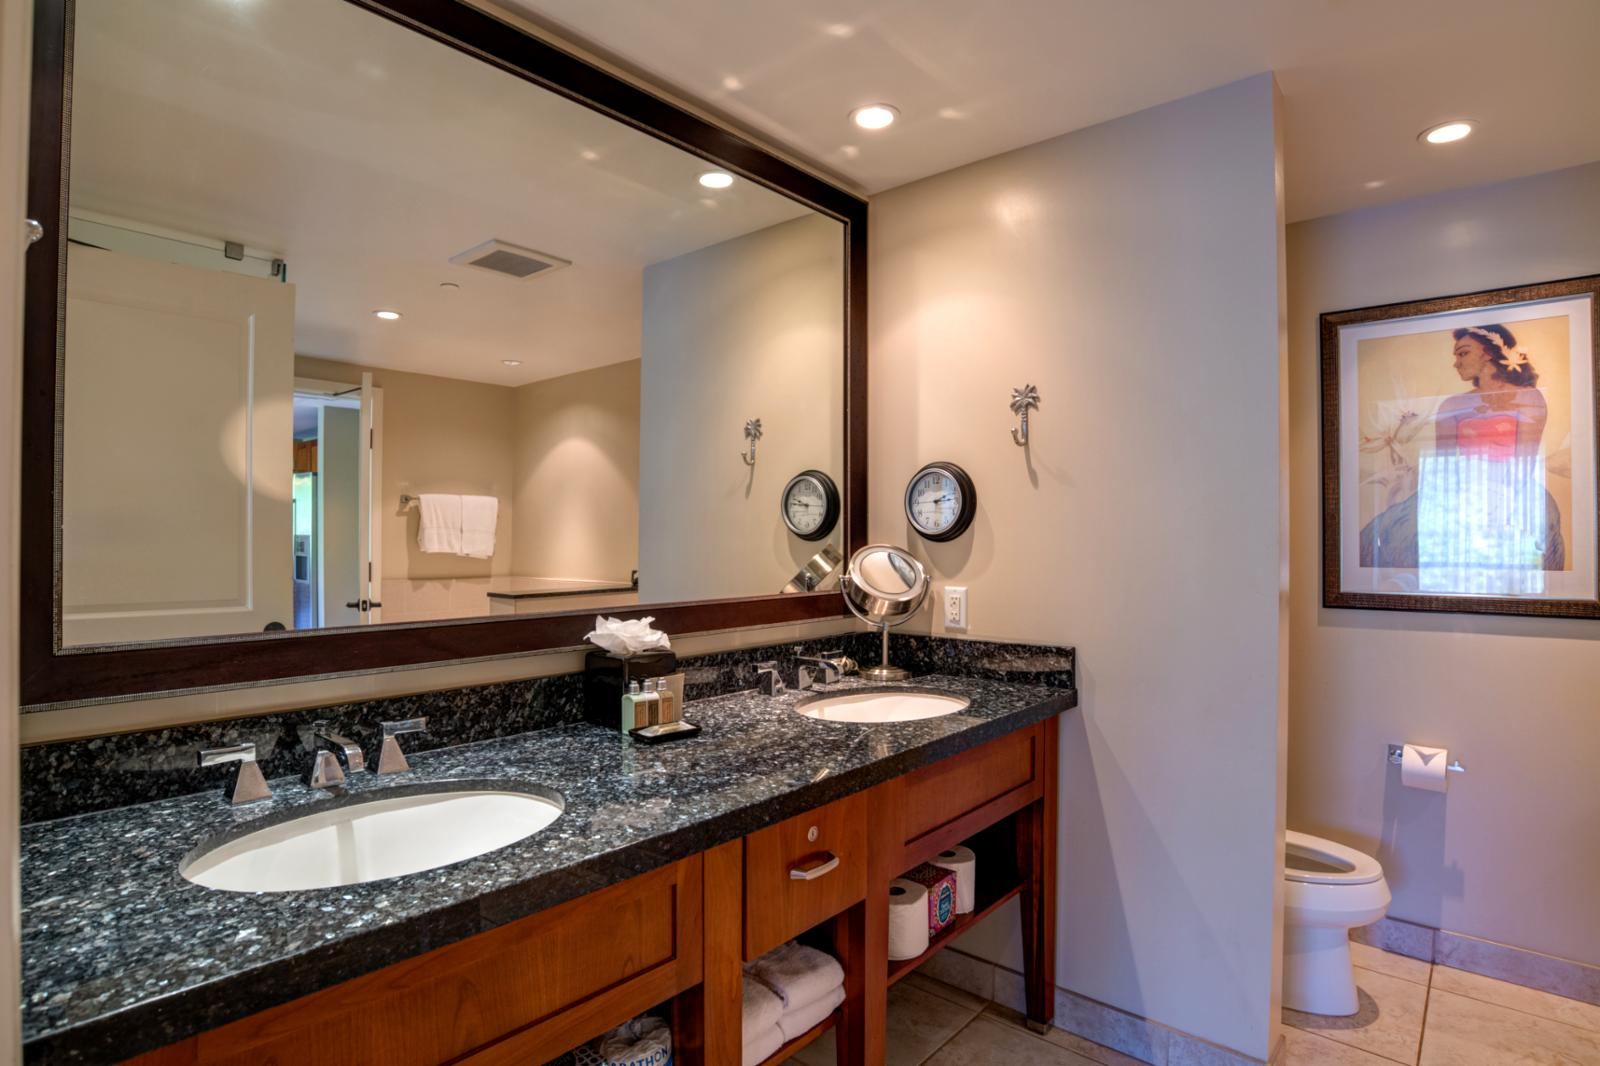 LARGE dual sinks and additional storage space